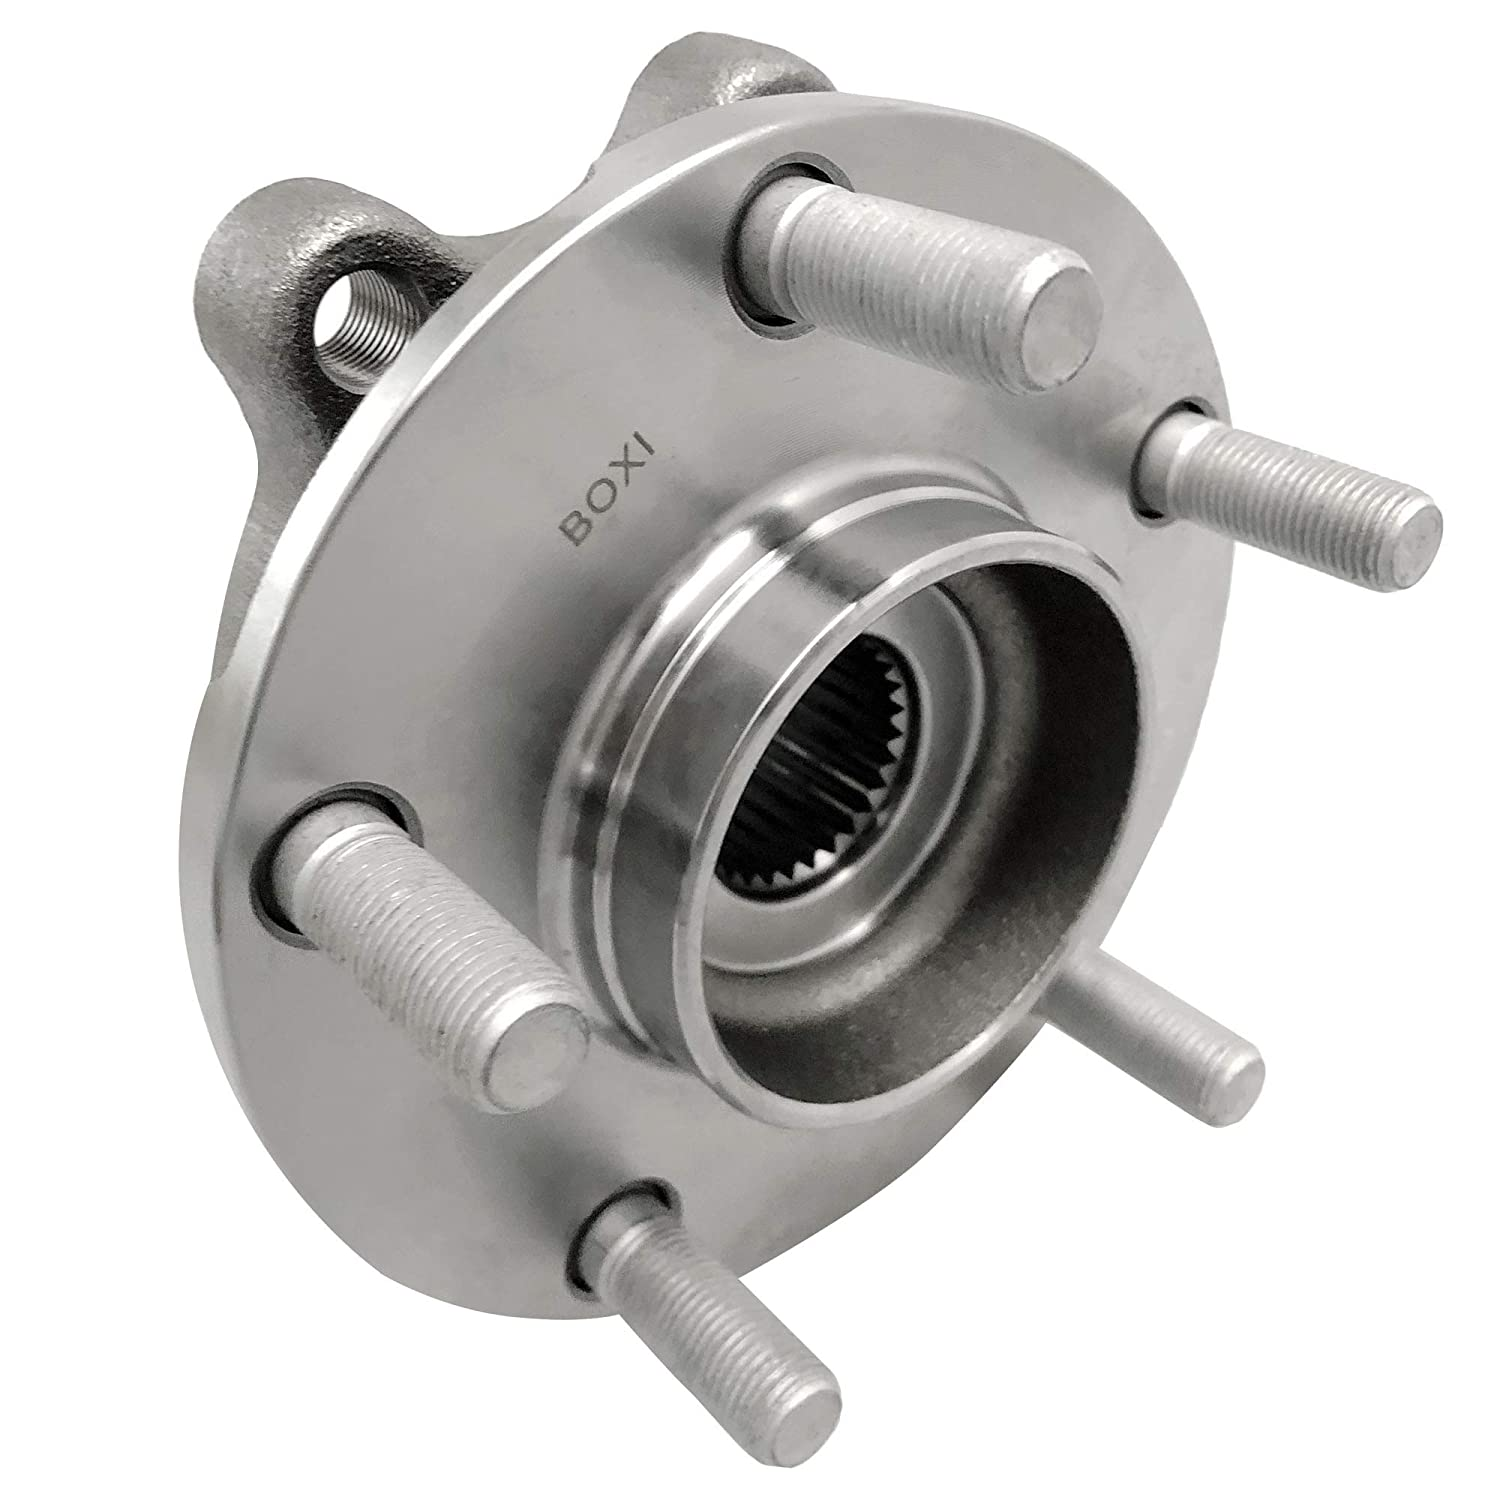 BOXI Front Left or Right Wheel Hub and Bearing Assembly for Nissan Altima 2007-2012 FITS 2.5L 4-Cylinder MODELS ONLY 513294